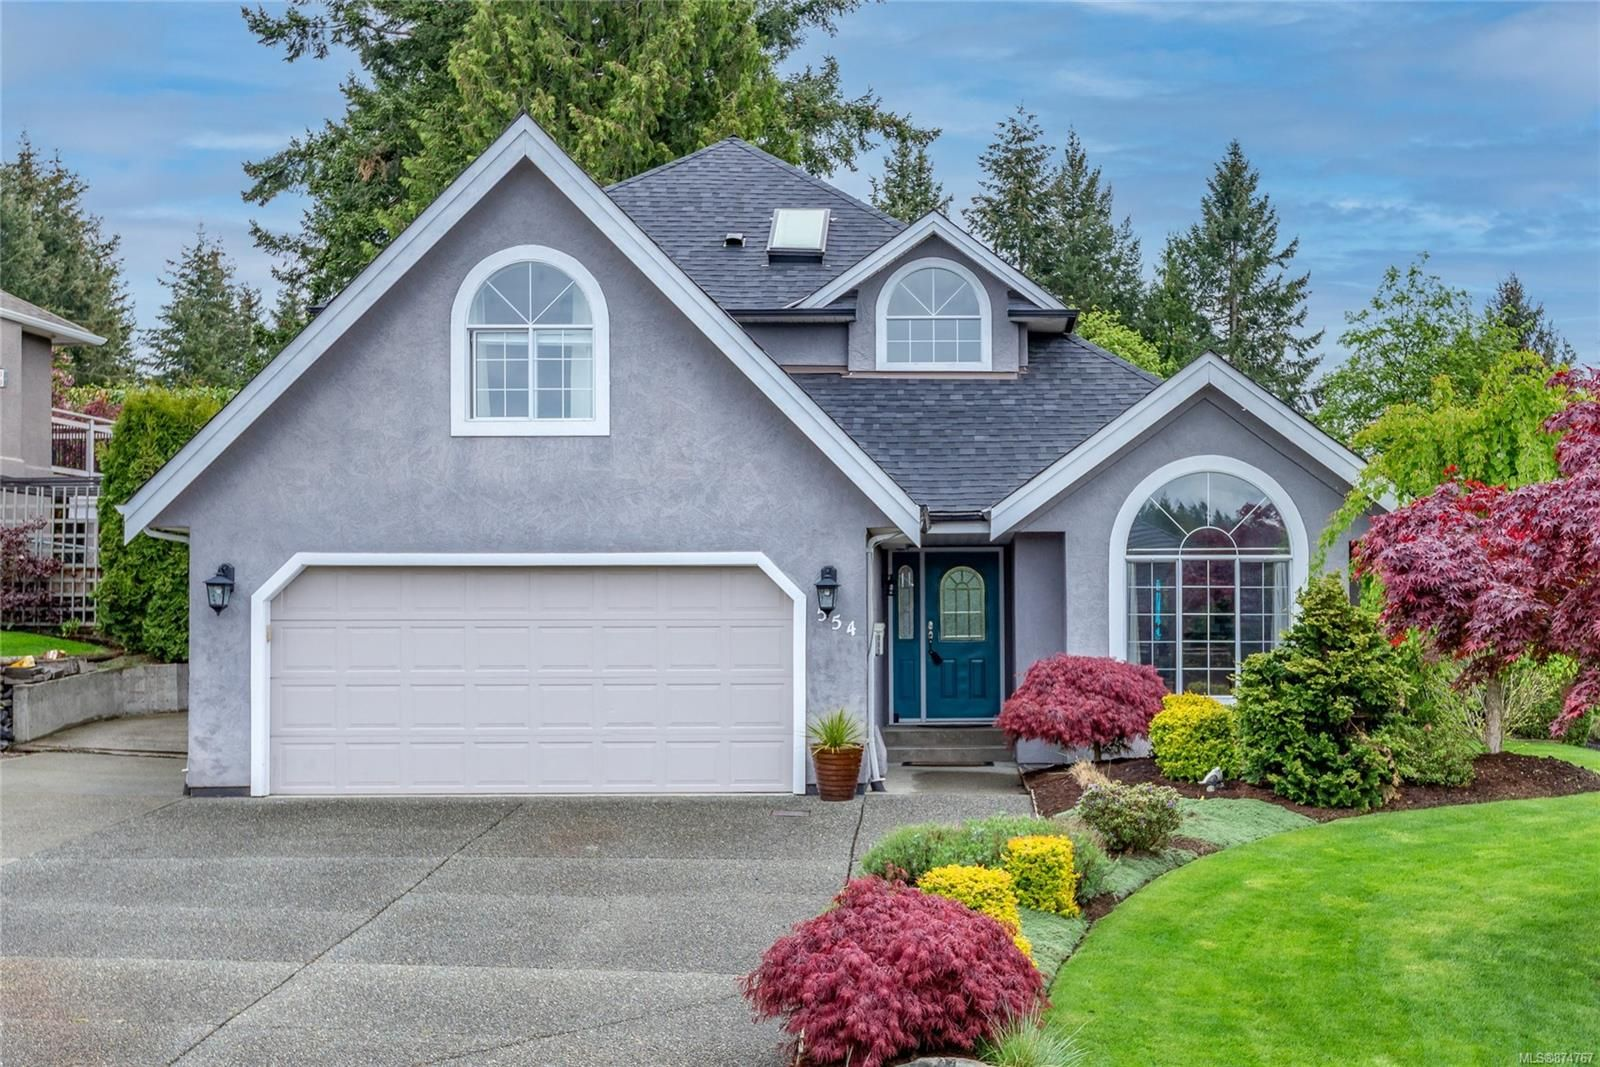 Main Photo: 554 Steenbuck Dr in : CR Willow Point House for sale (Campbell River)  : MLS®# 874767